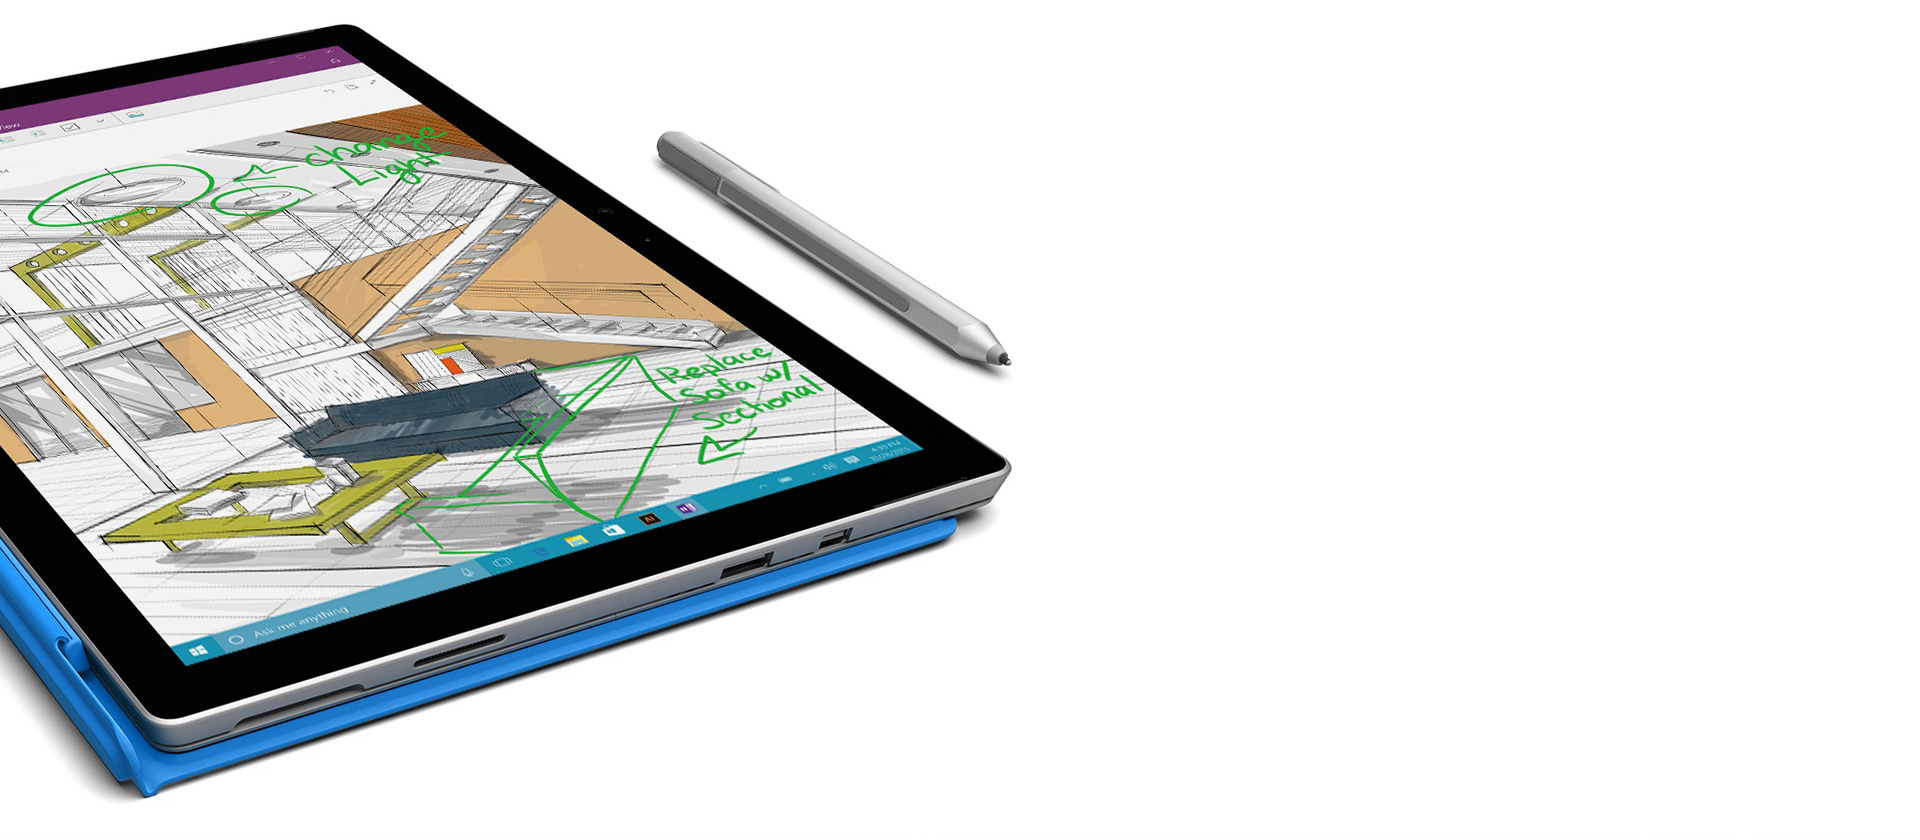 Surface-Pro-4-images (2)